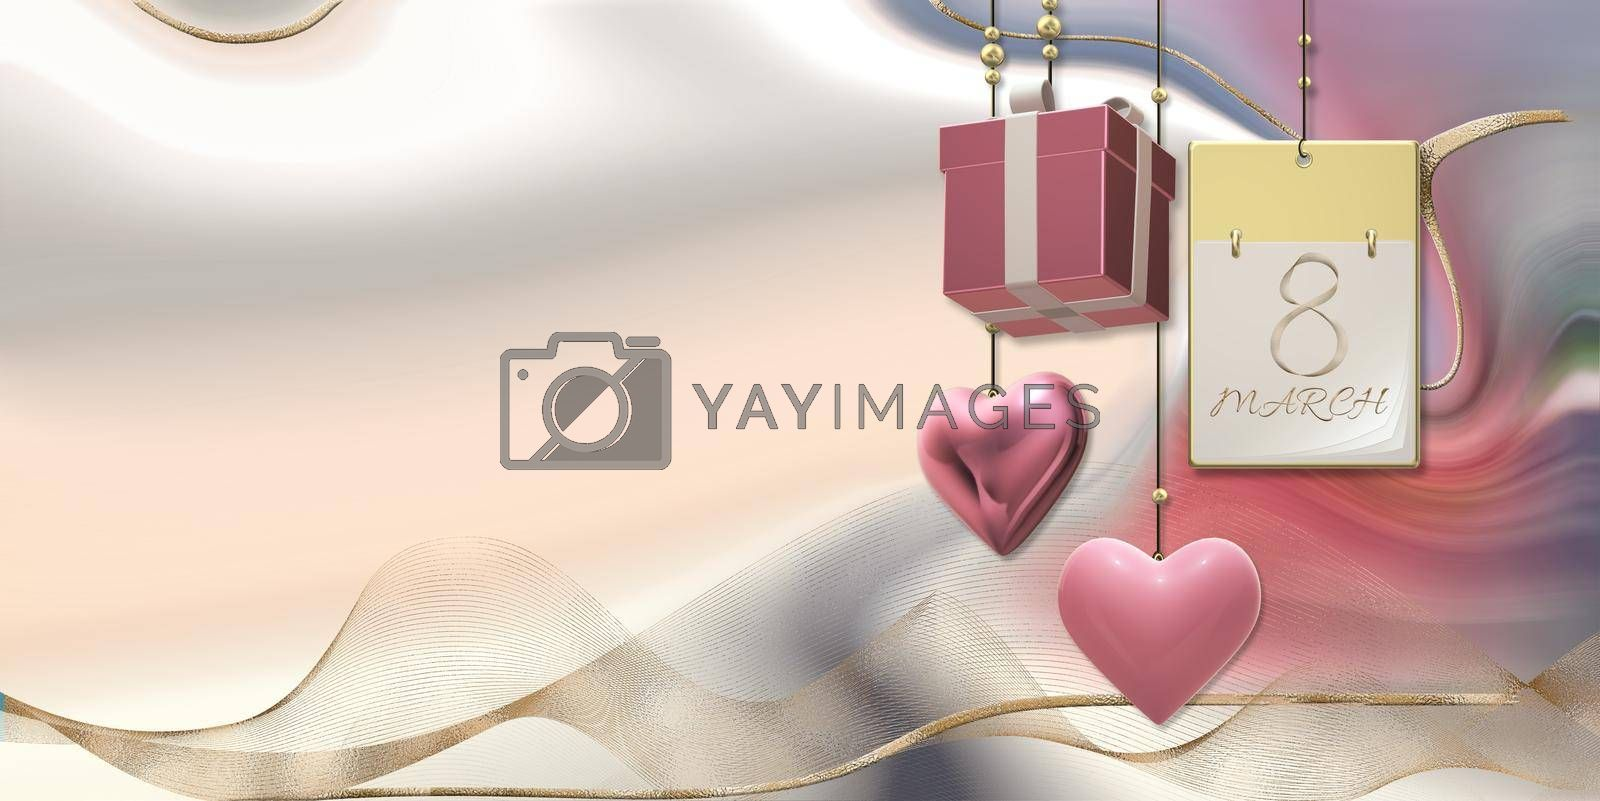 Women's Day 8 March. Calendar with 8 March, hanging 3D gift box, hearts on pastel pink abstract background. Beautiful design for 8th March international Womens day. 3D illustration